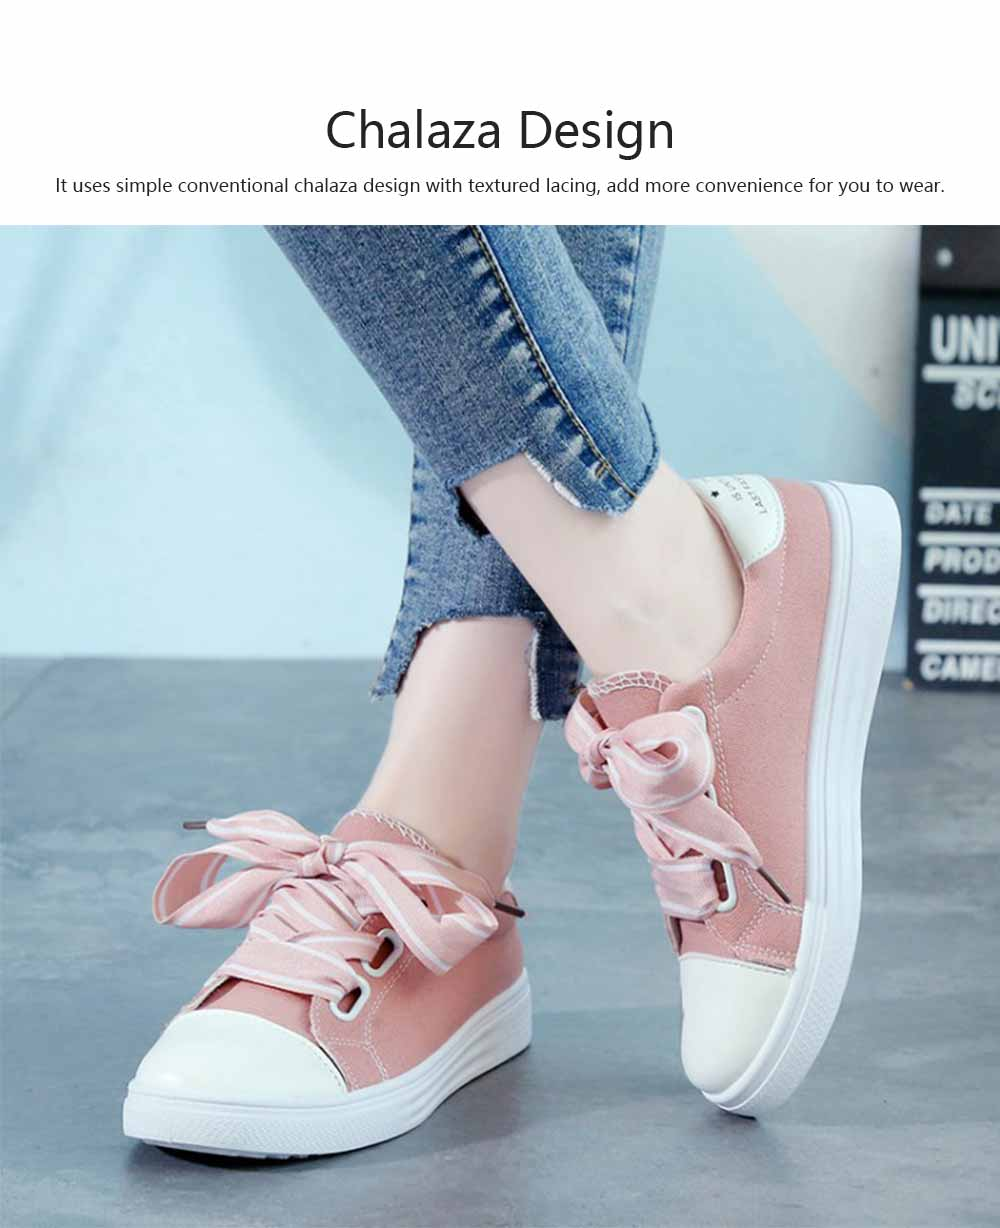 Low Tops Canvas Shoes for Women and Girls Fashion Style Breathable Canvas Microfiber Lining Rubber Sole Chalaza sneakers 4